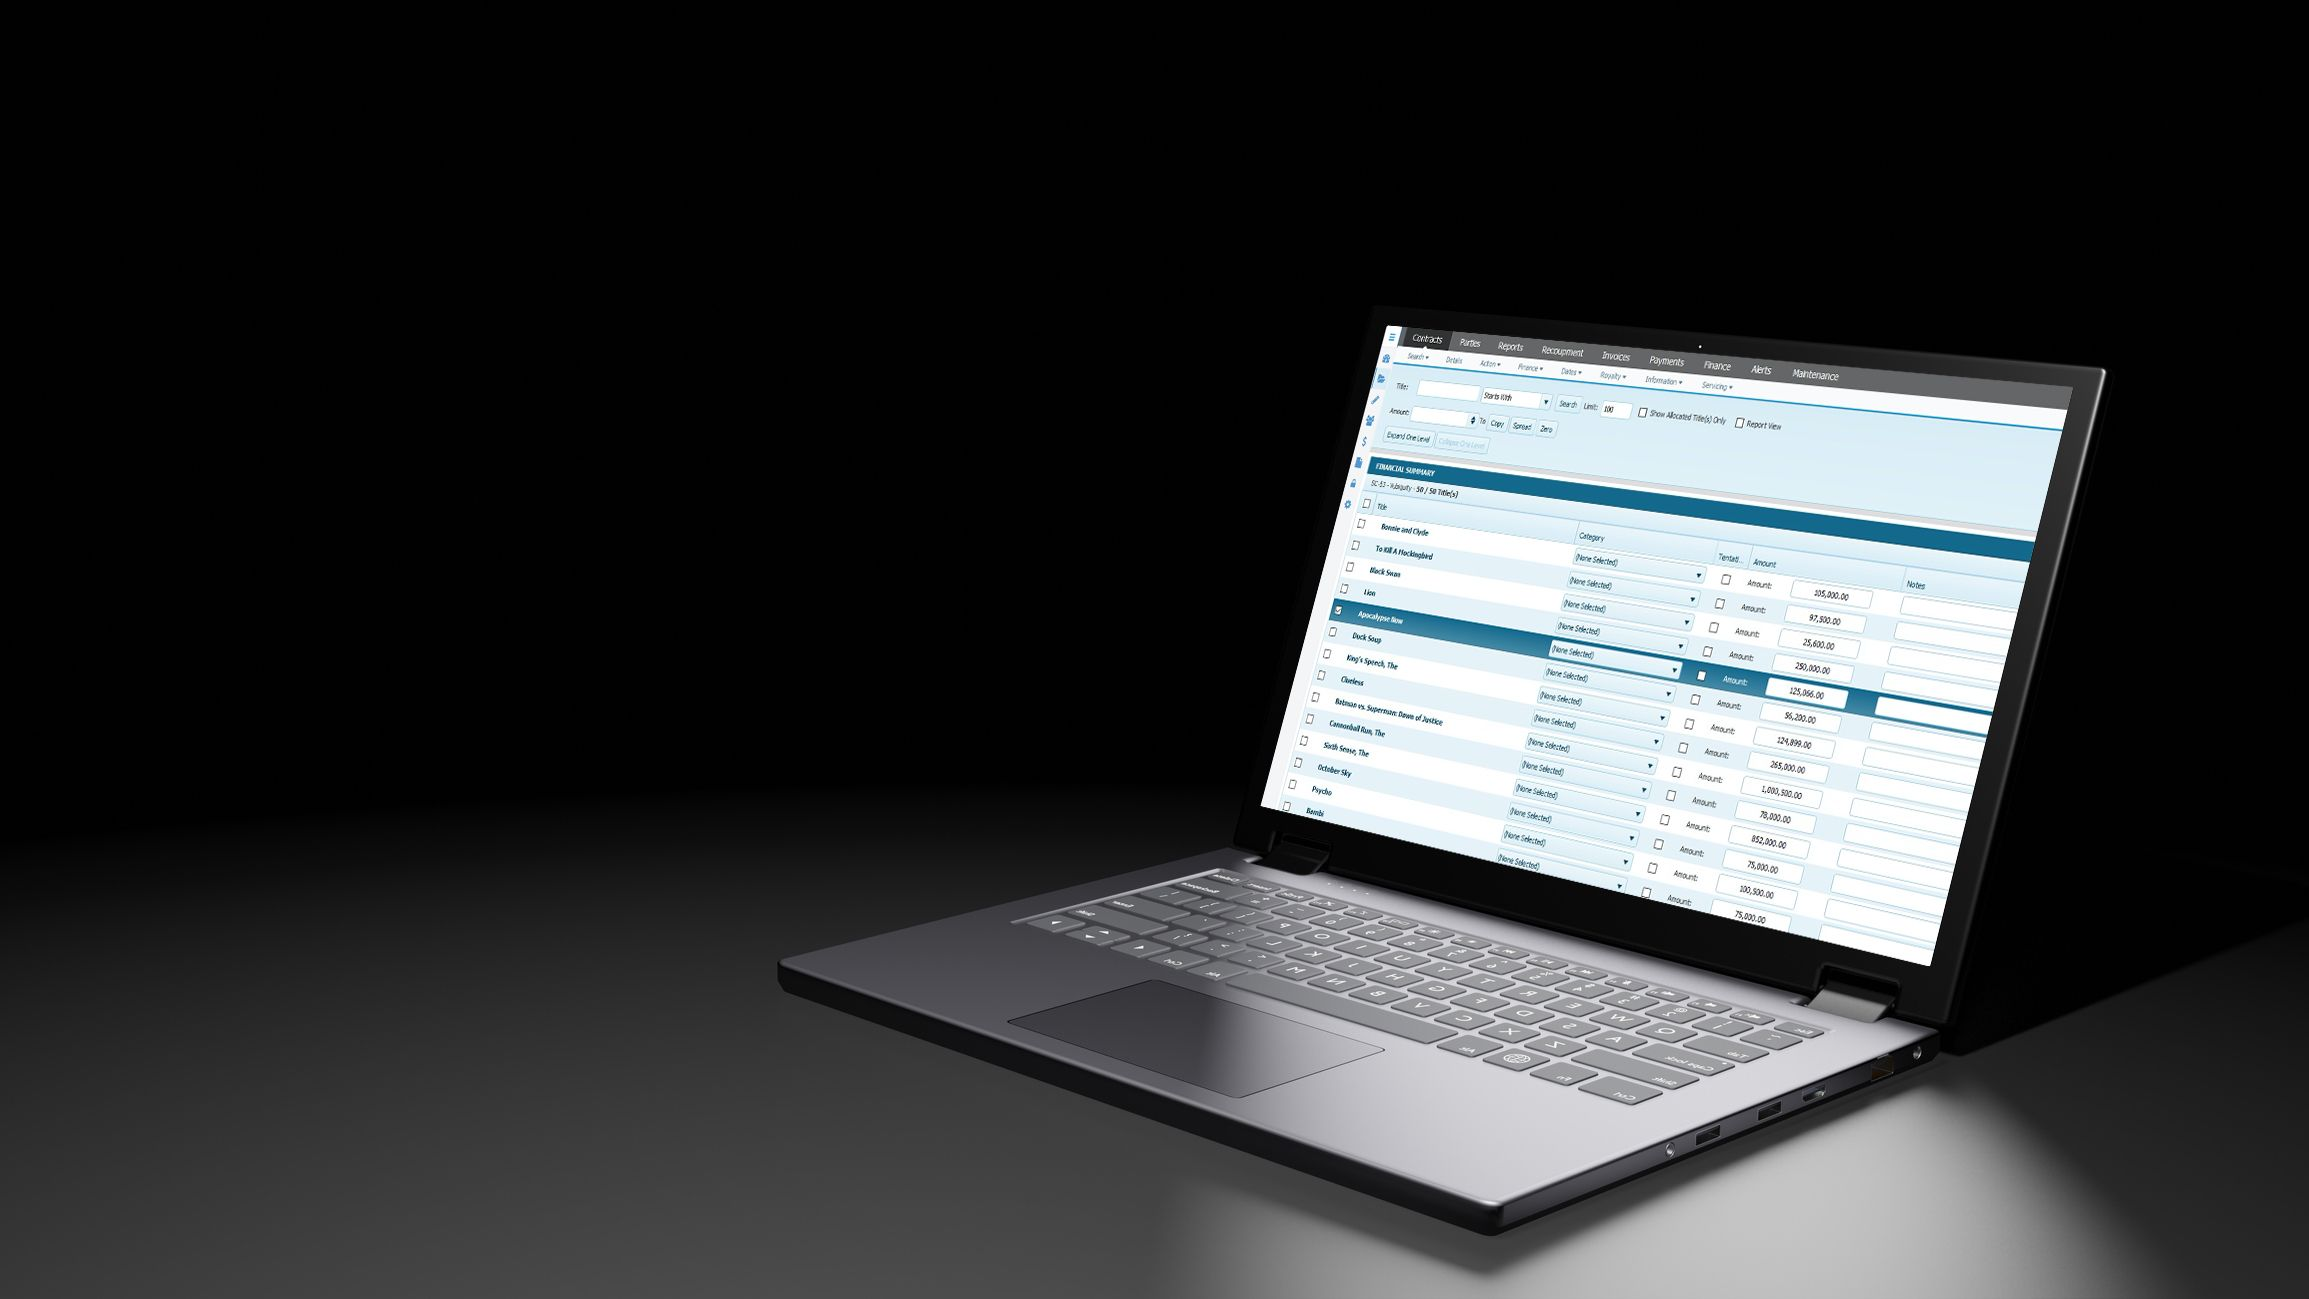 laptop with FilmTrack Financials Manager displayed on the screen